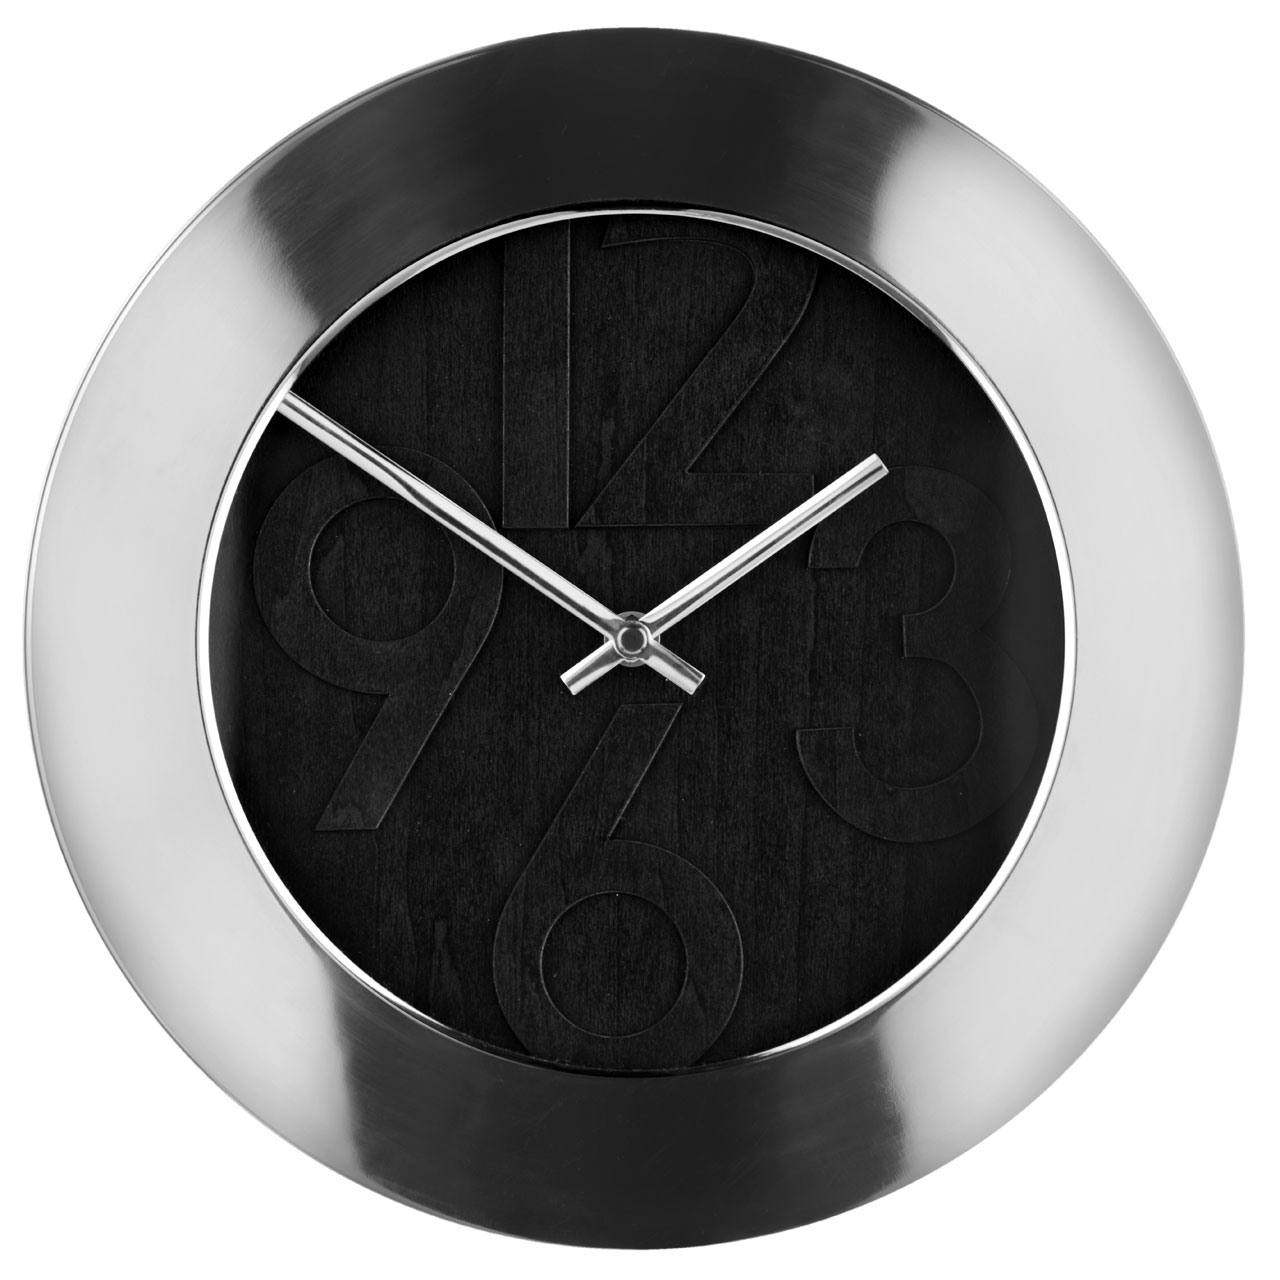 new round black face wall clock with numbers and stainless steel frame analogue ebay. Black Bedroom Furniture Sets. Home Design Ideas